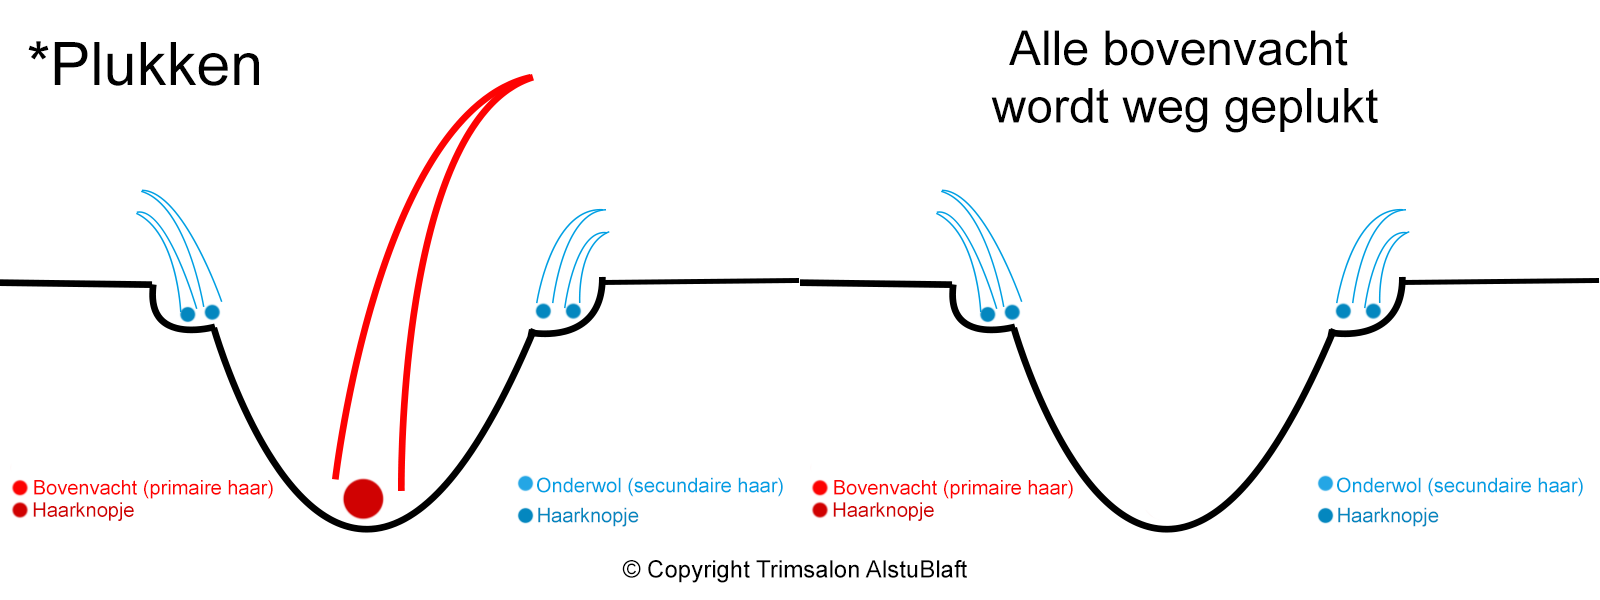 samenvatting plukken copyright trimsalon AlstuBlaft